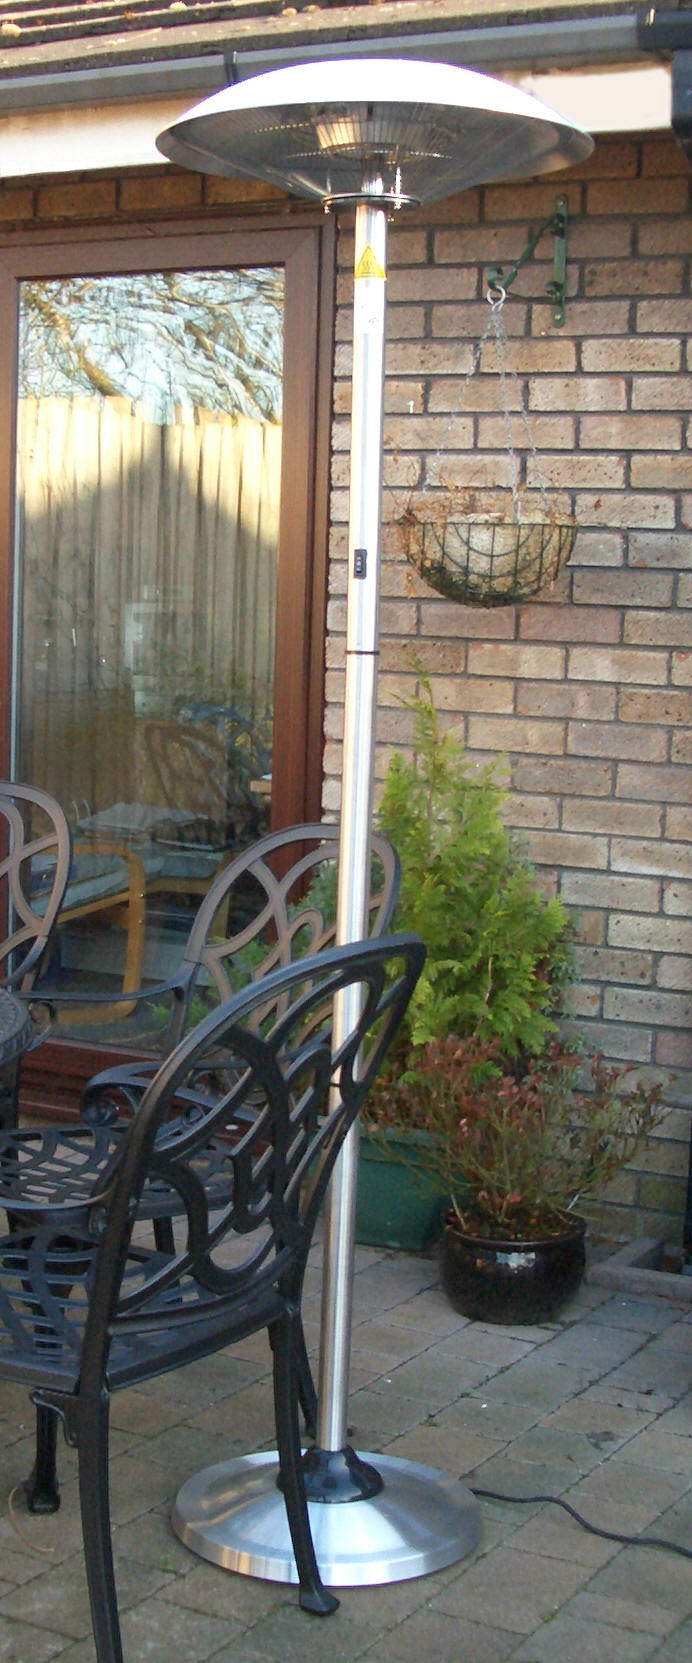 Outdoor Electric Patio Heater Reviews: Patio Heater